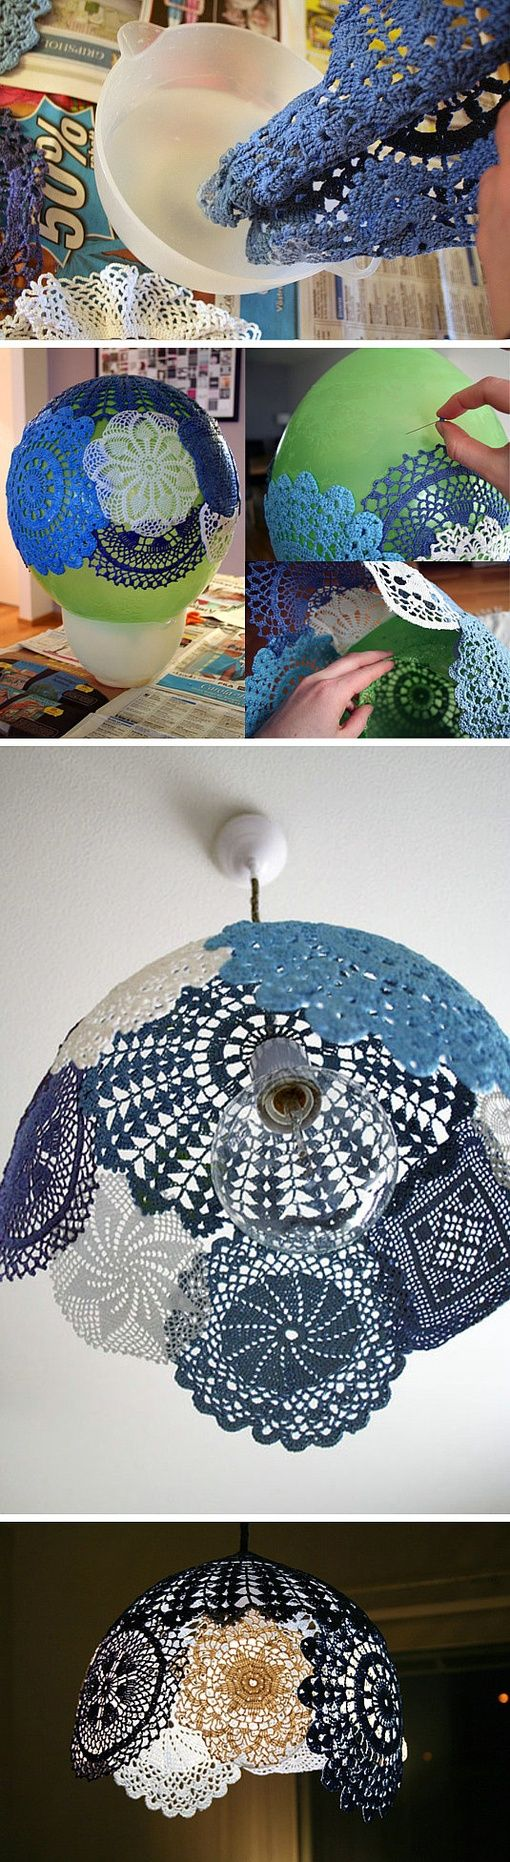 10 DIY home decor @ Home Ideas and Designs